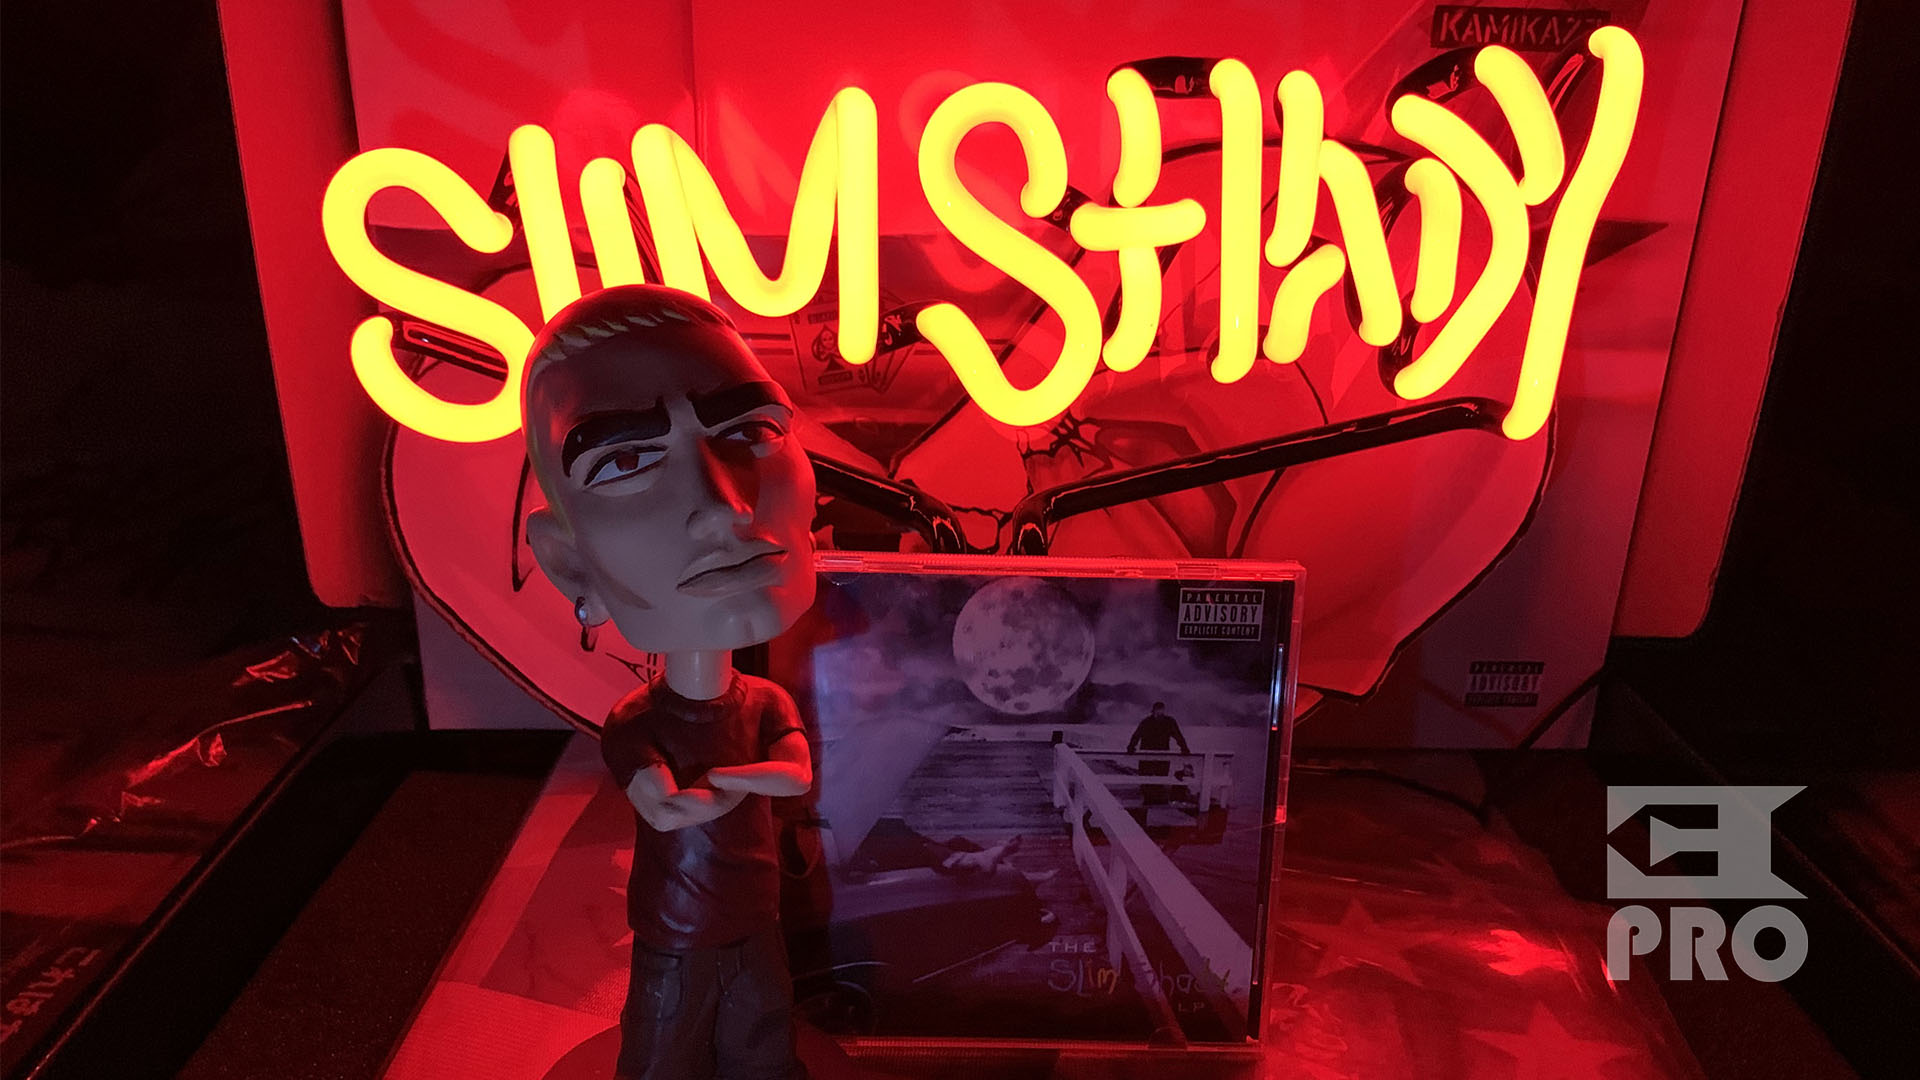 Unpacking: 'Slim Shady Neon Light' dedicated to 20th anniversary of The Slim Shady LP